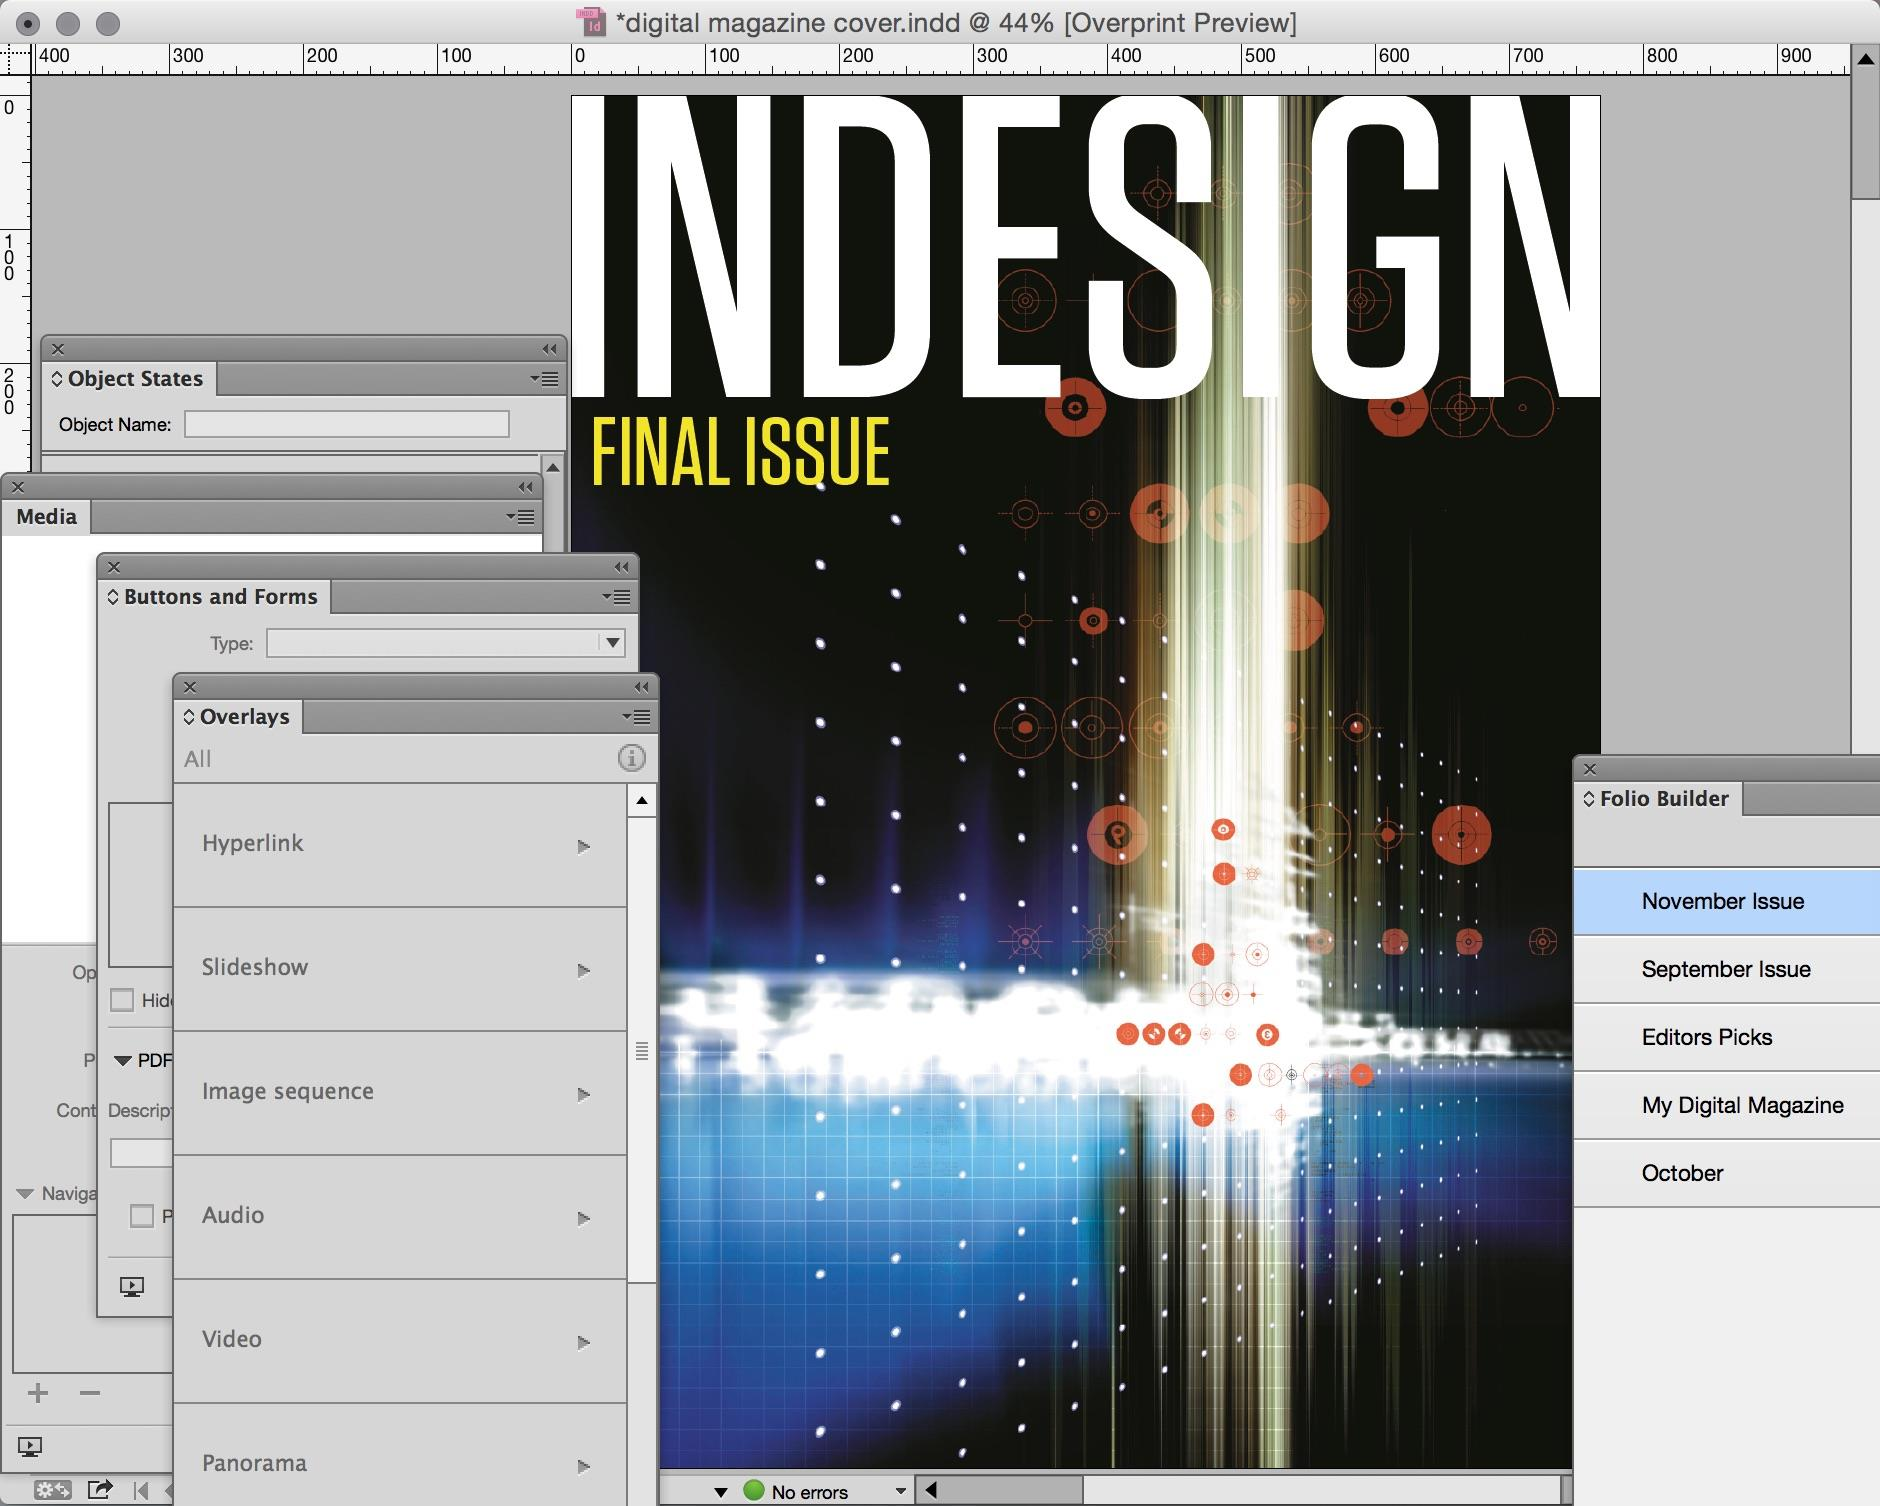 Is InDesign now becoming redundant for digital magazine publishers